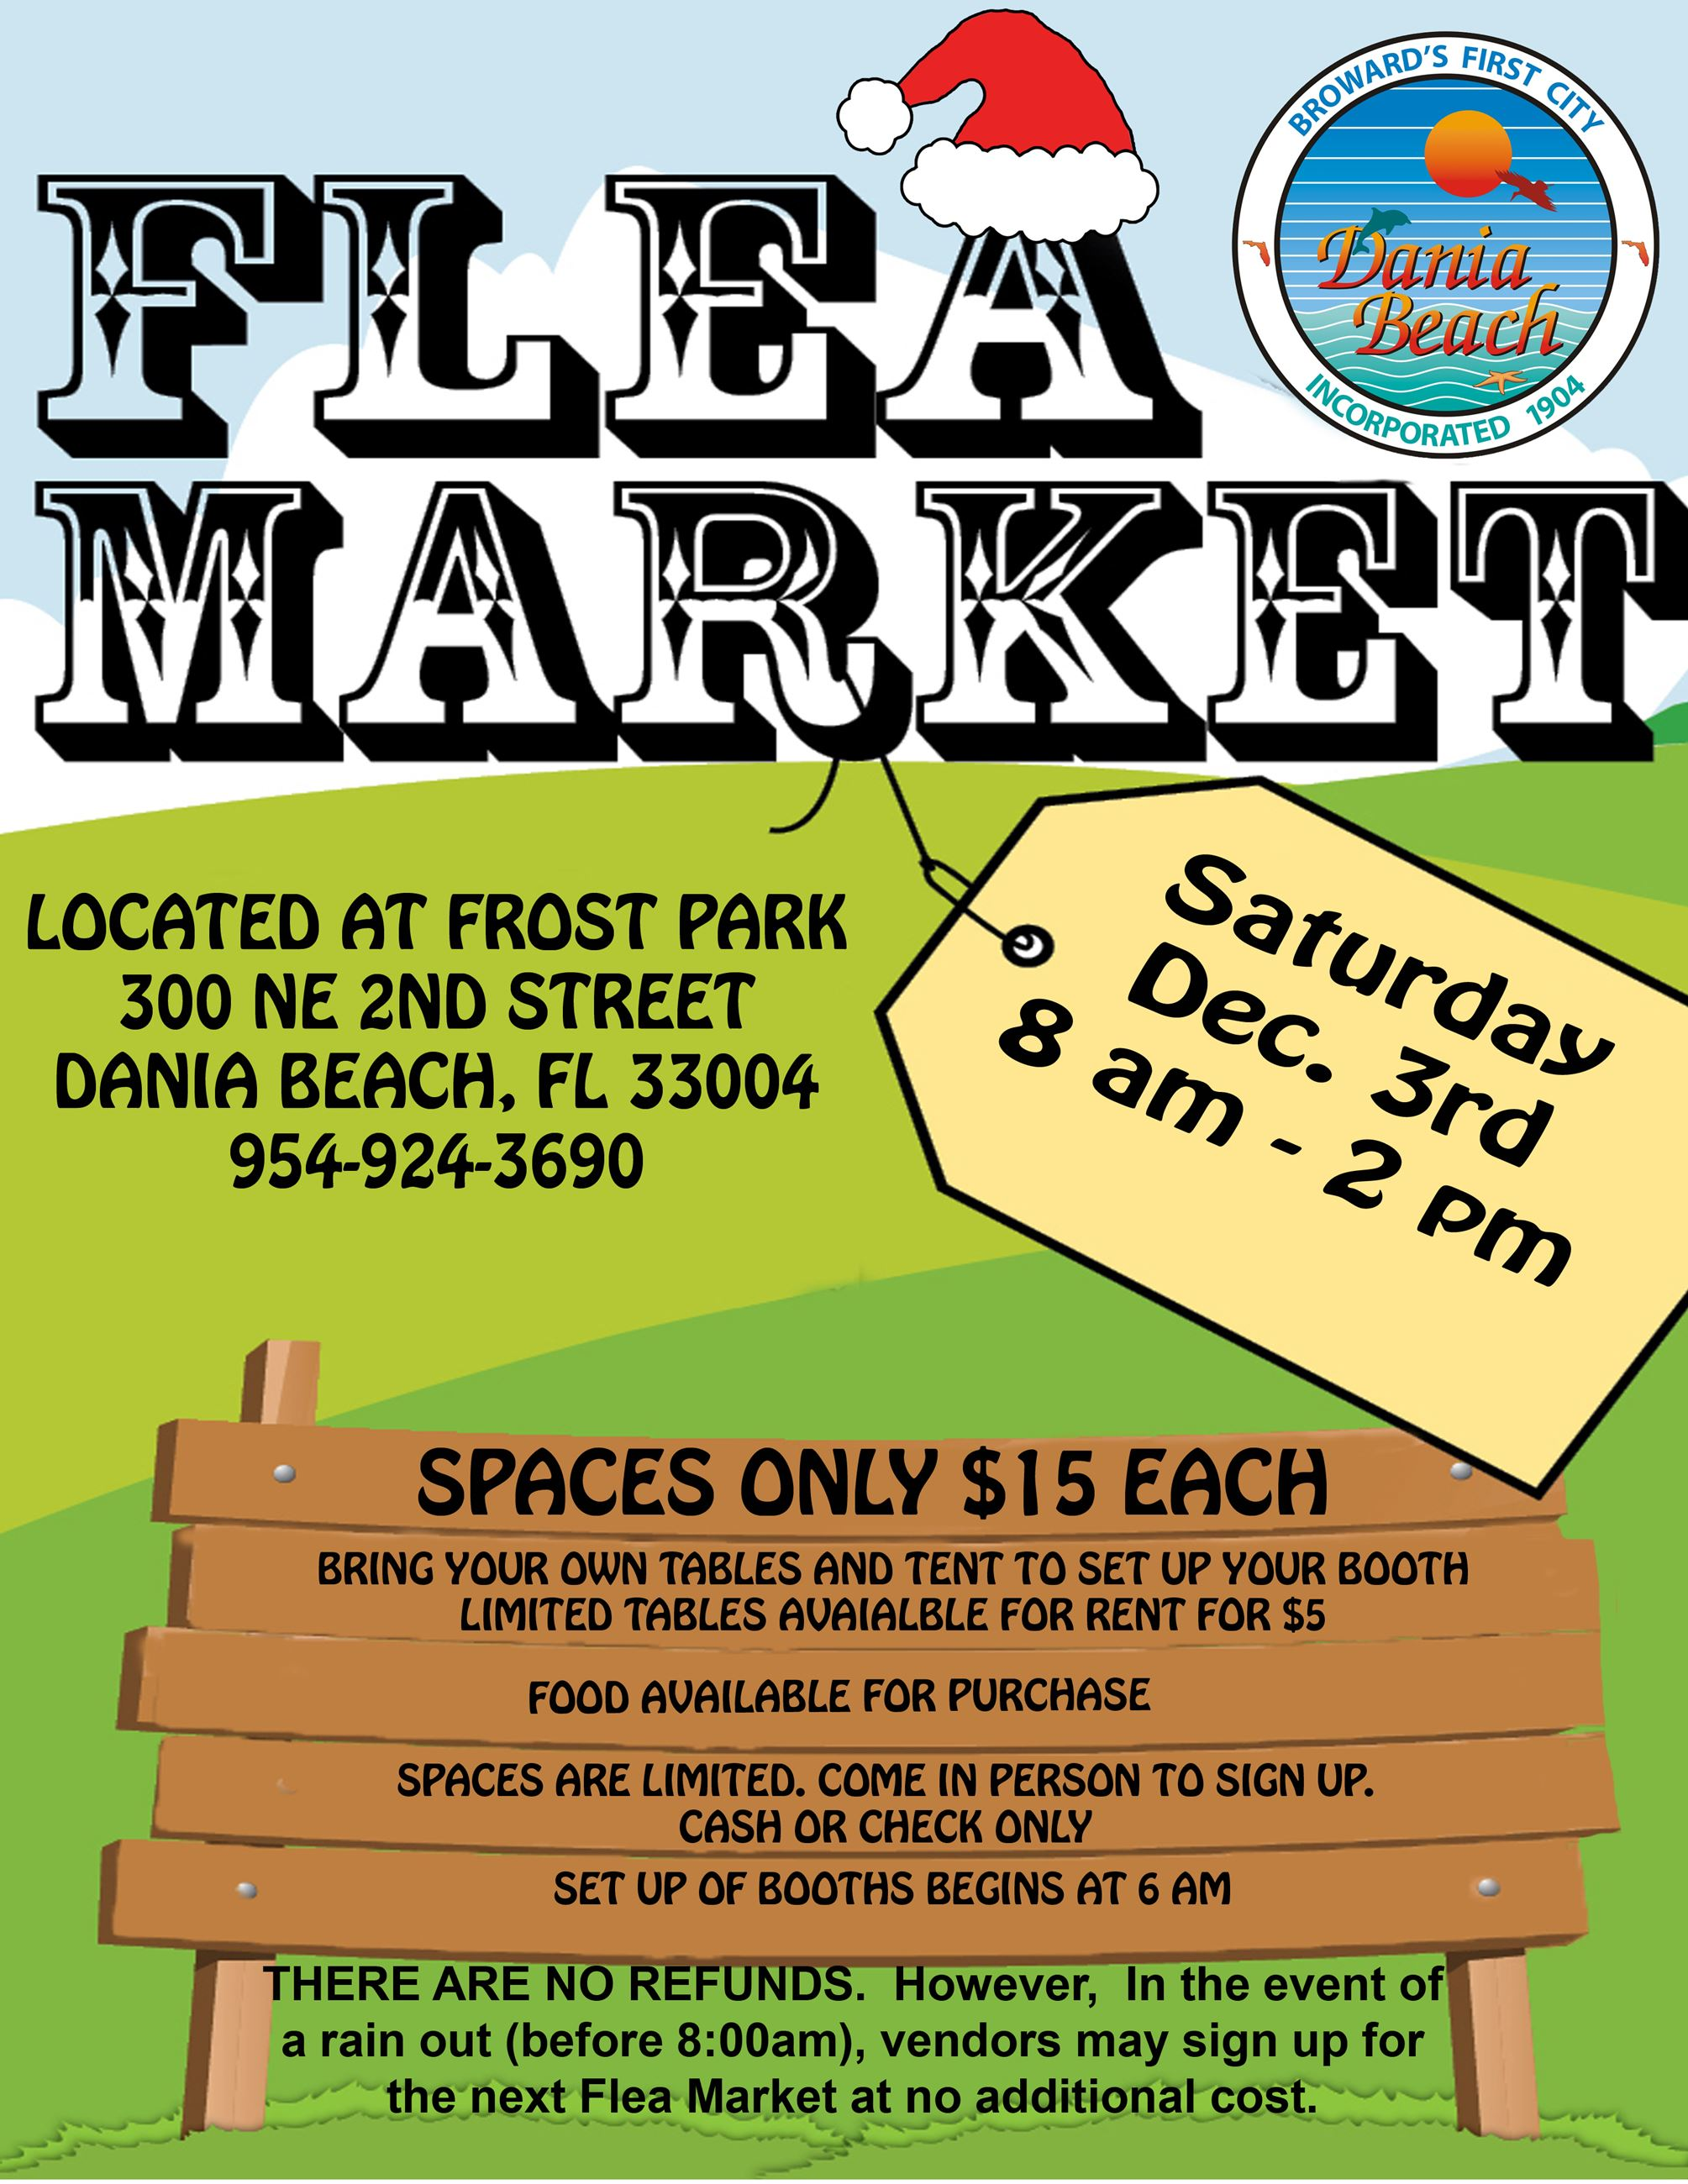 FLEA MARKET December Dania Beach Frost park